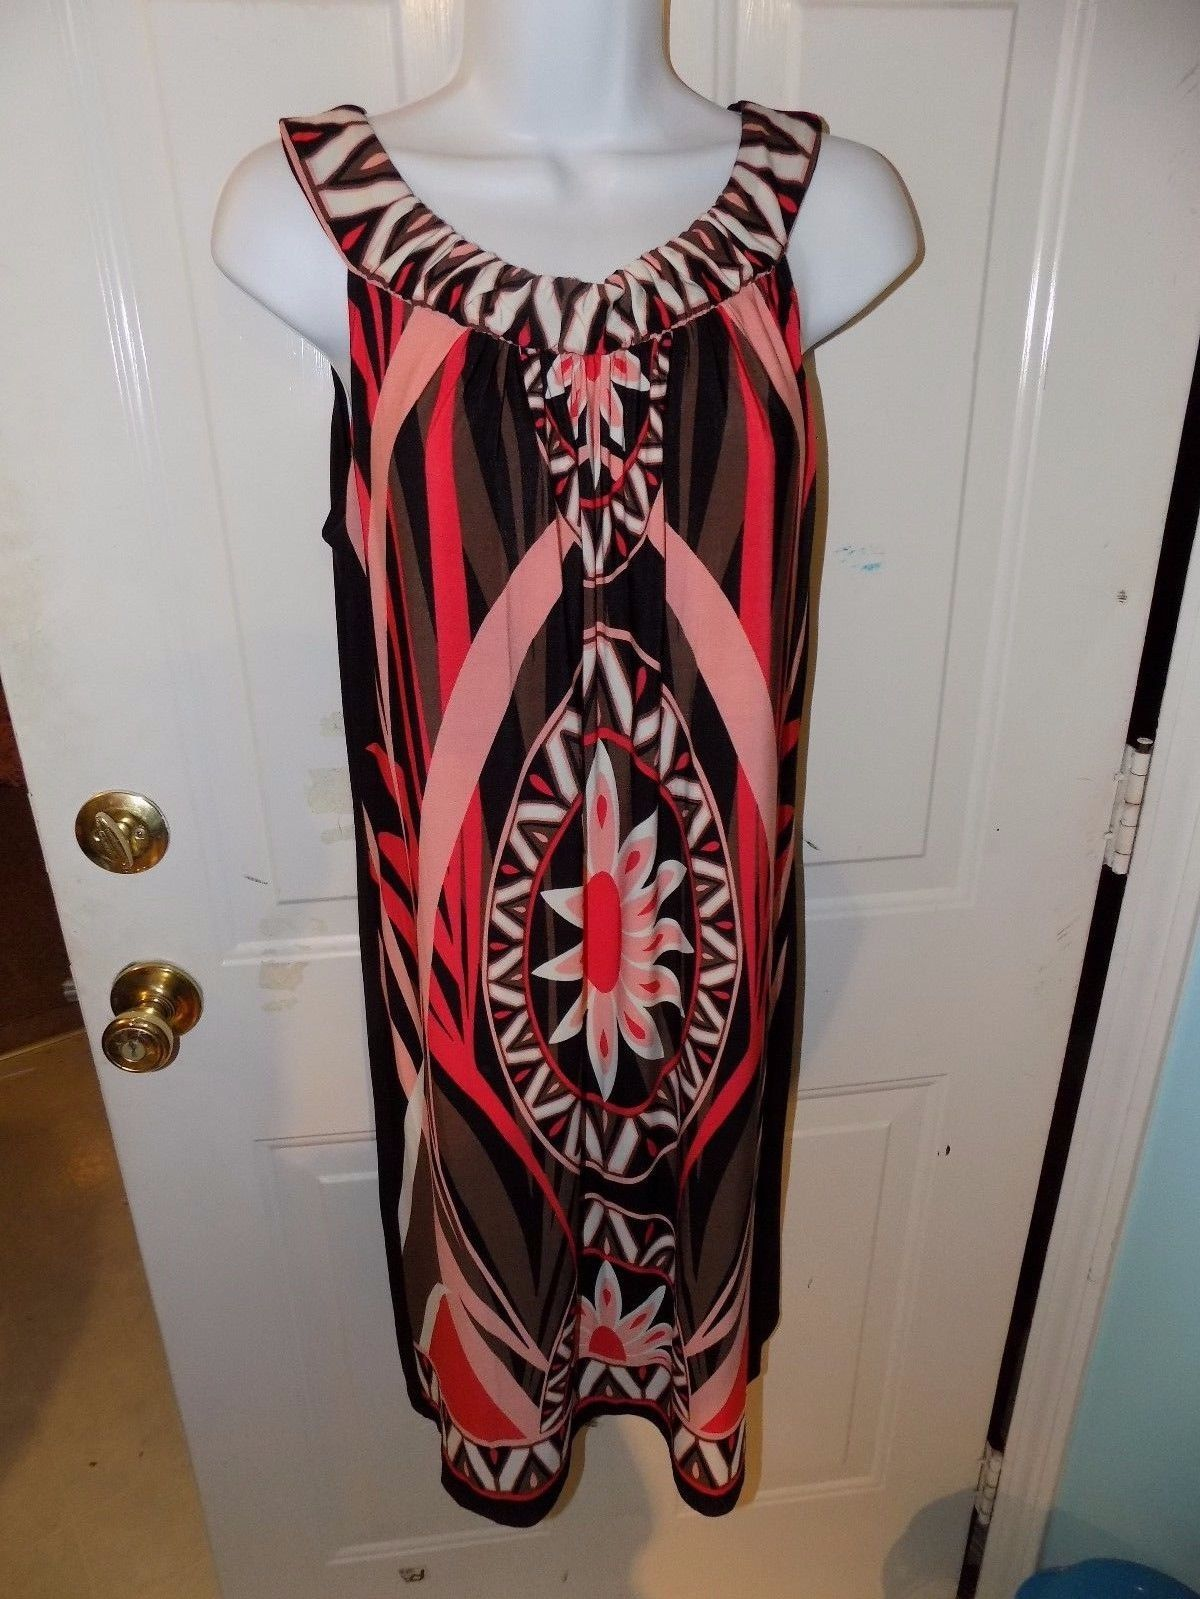 Primary image for Cato Sleeveless Multi-Color Knee Length Stretch Shift Dress Size S Women's EUC